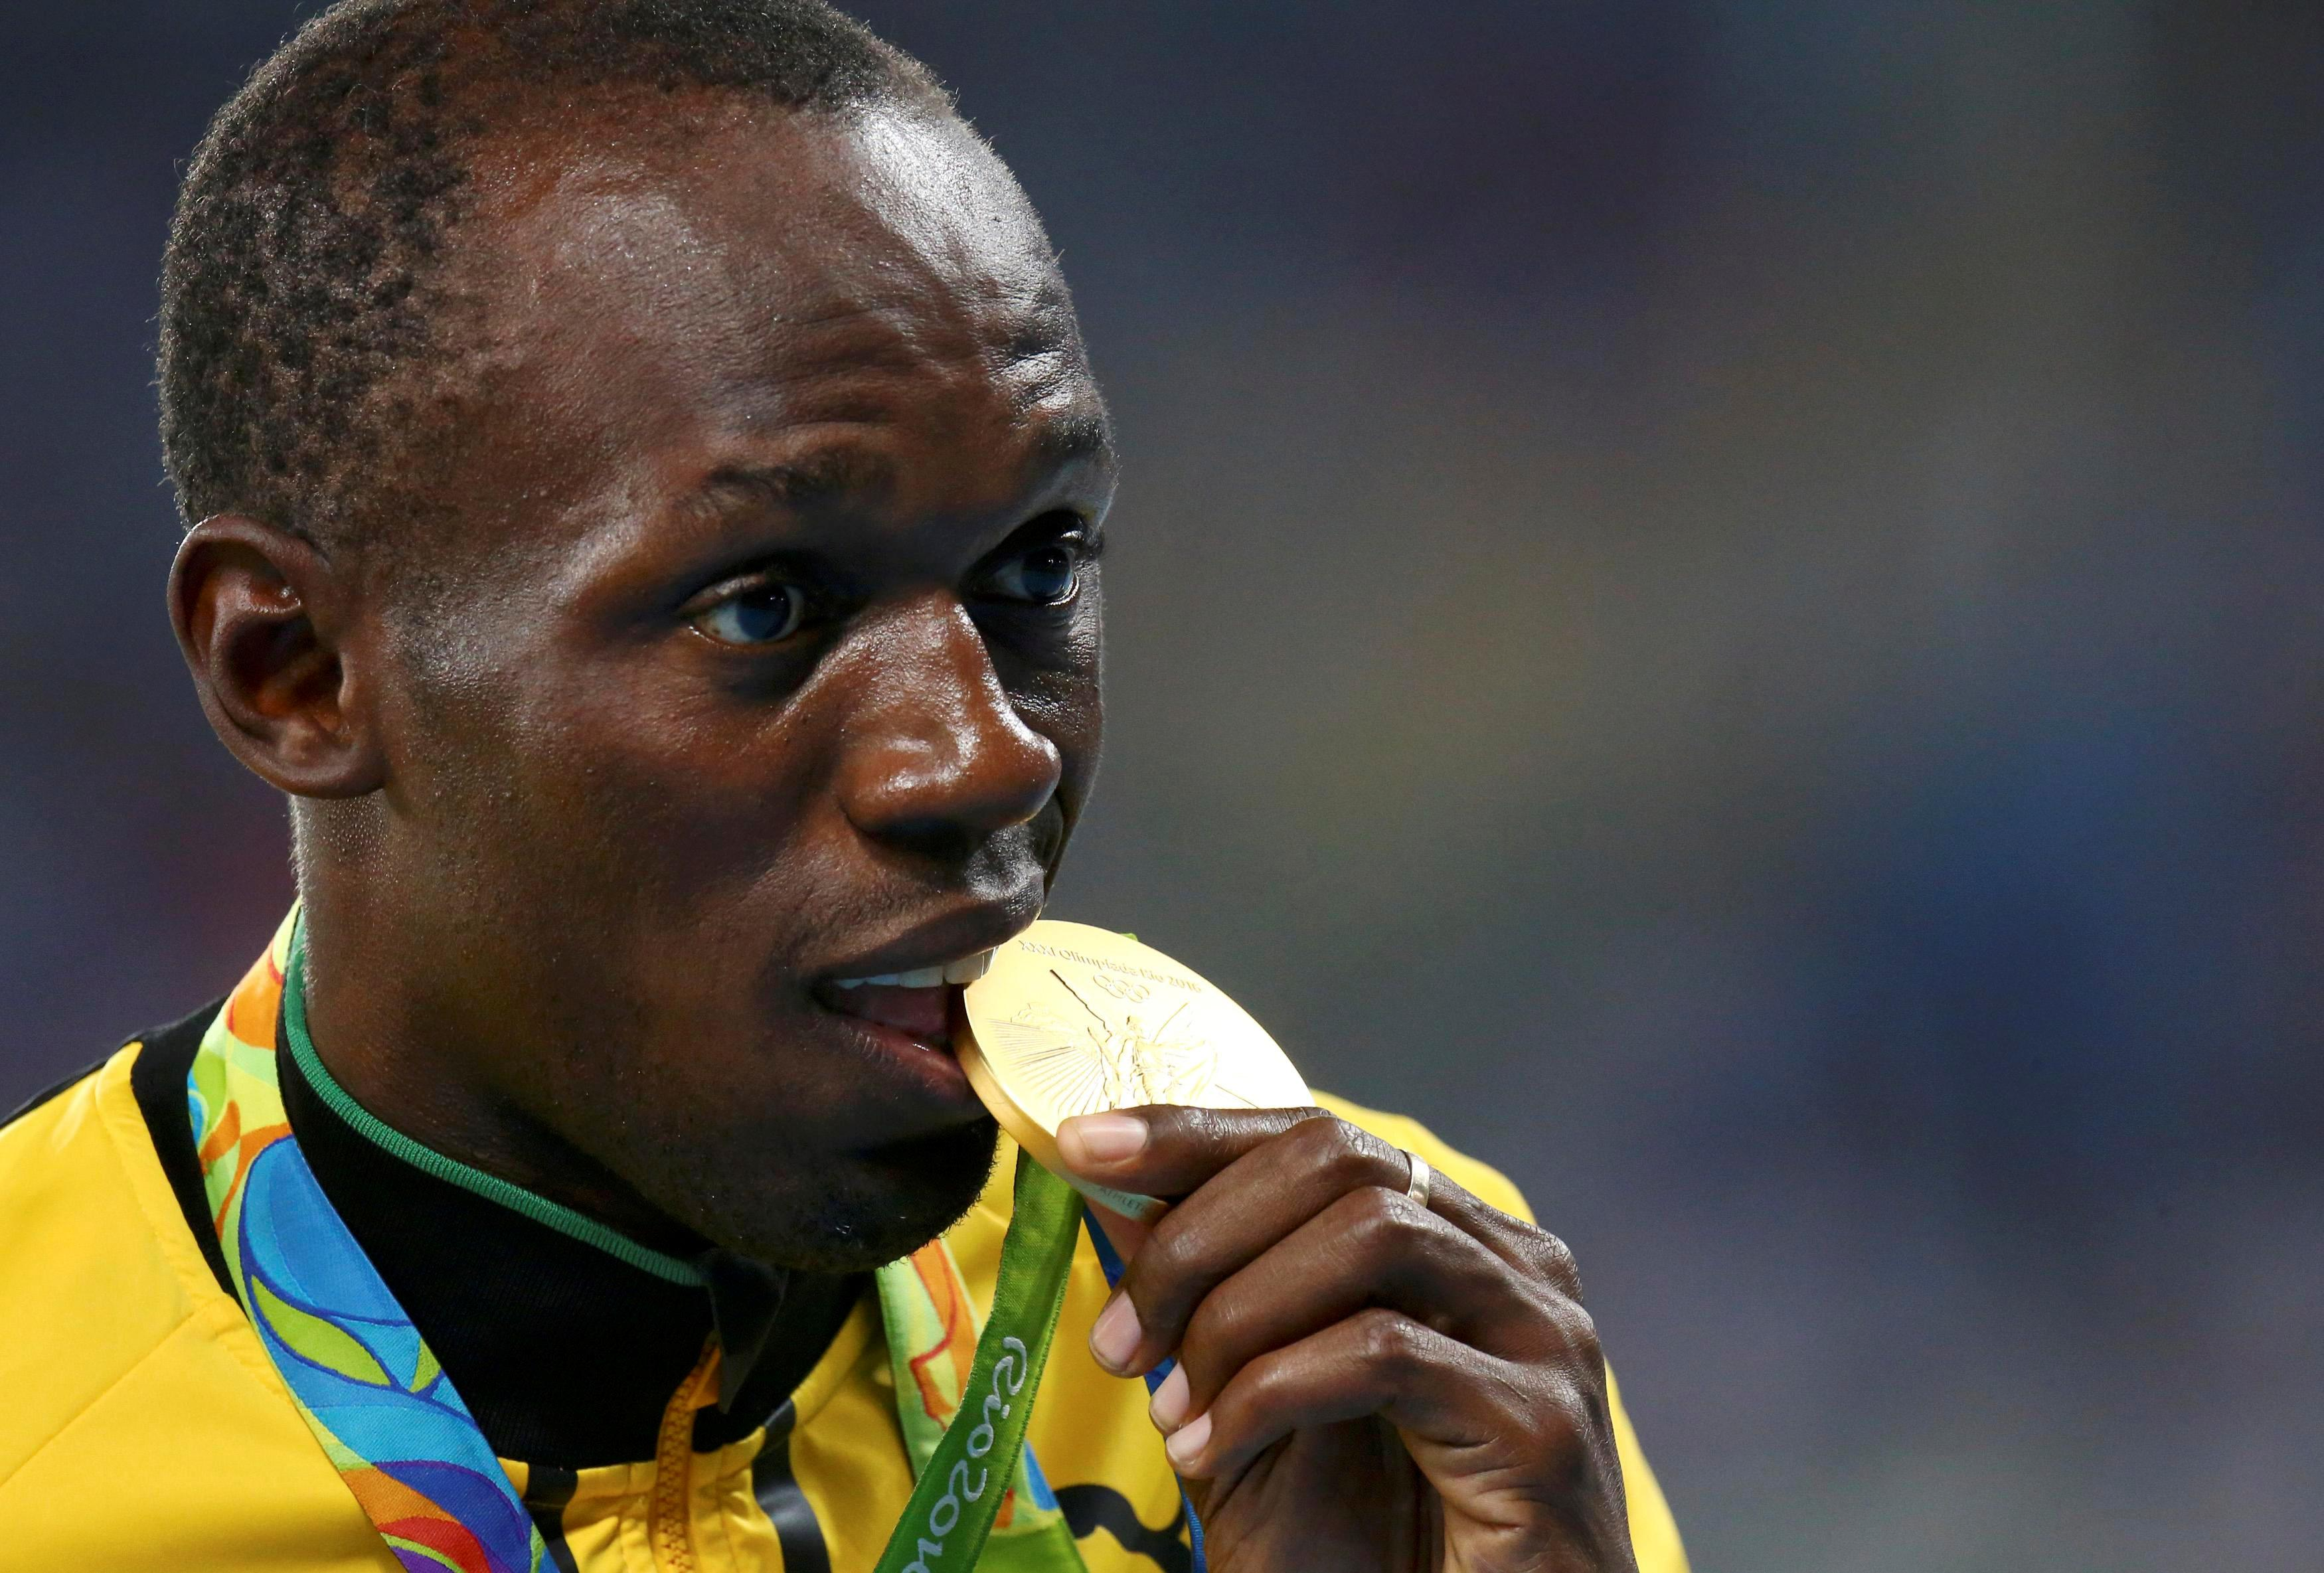 Jamaica's 'spoilt' male sprinters need to work harder - Bolt